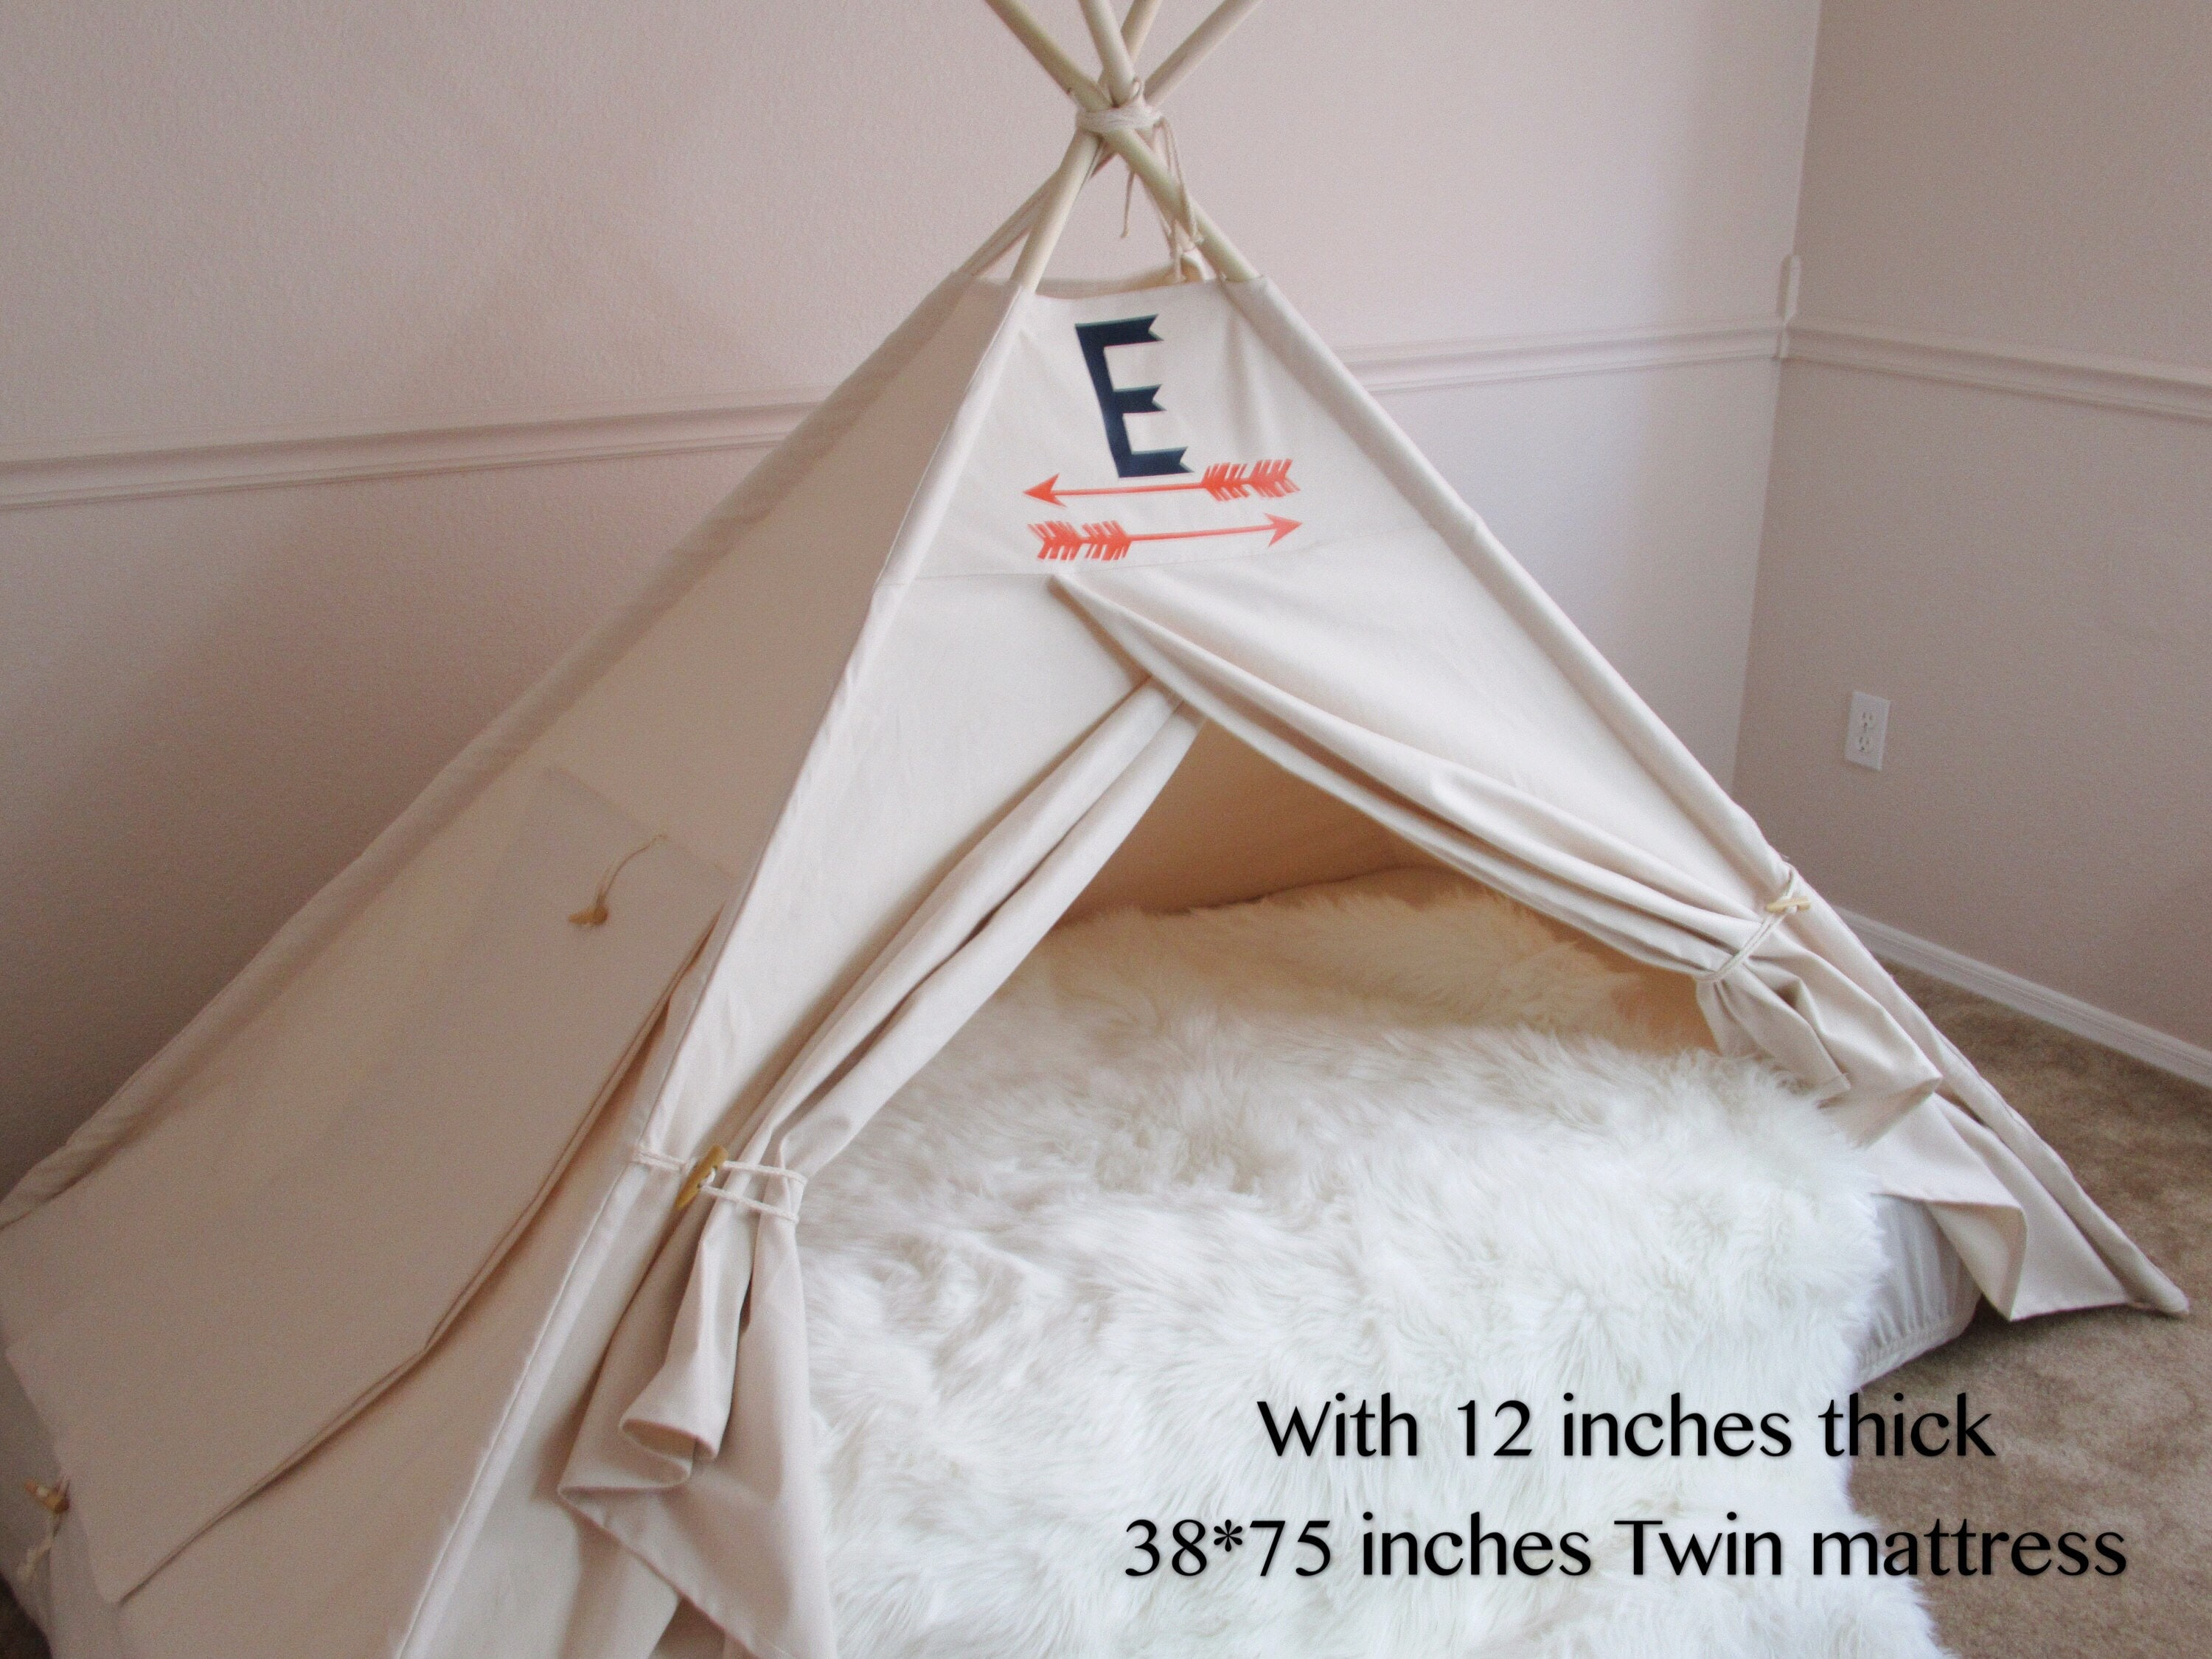 Plain Bed canopy teepee with secret door tent bed canopy teepee canopy for bed kids Teepeewith canvas and Overlapping front doors & Plain Bed canopy teepee with secret door tent bed canopy teepee ...